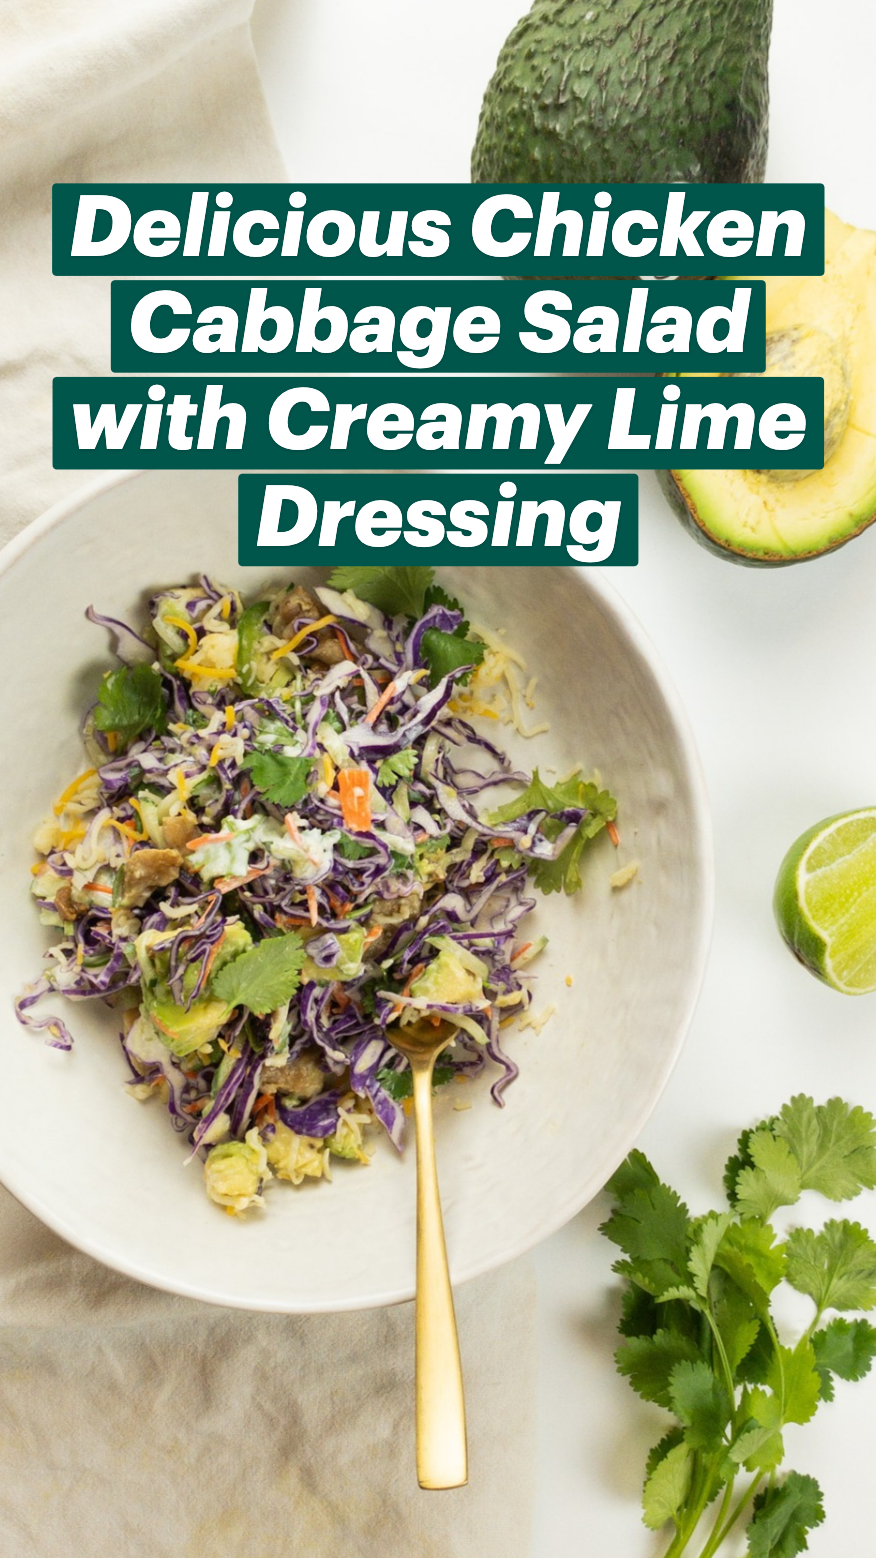 Delicious Chicken Cabbage Salad with Creamy Lime Dressing